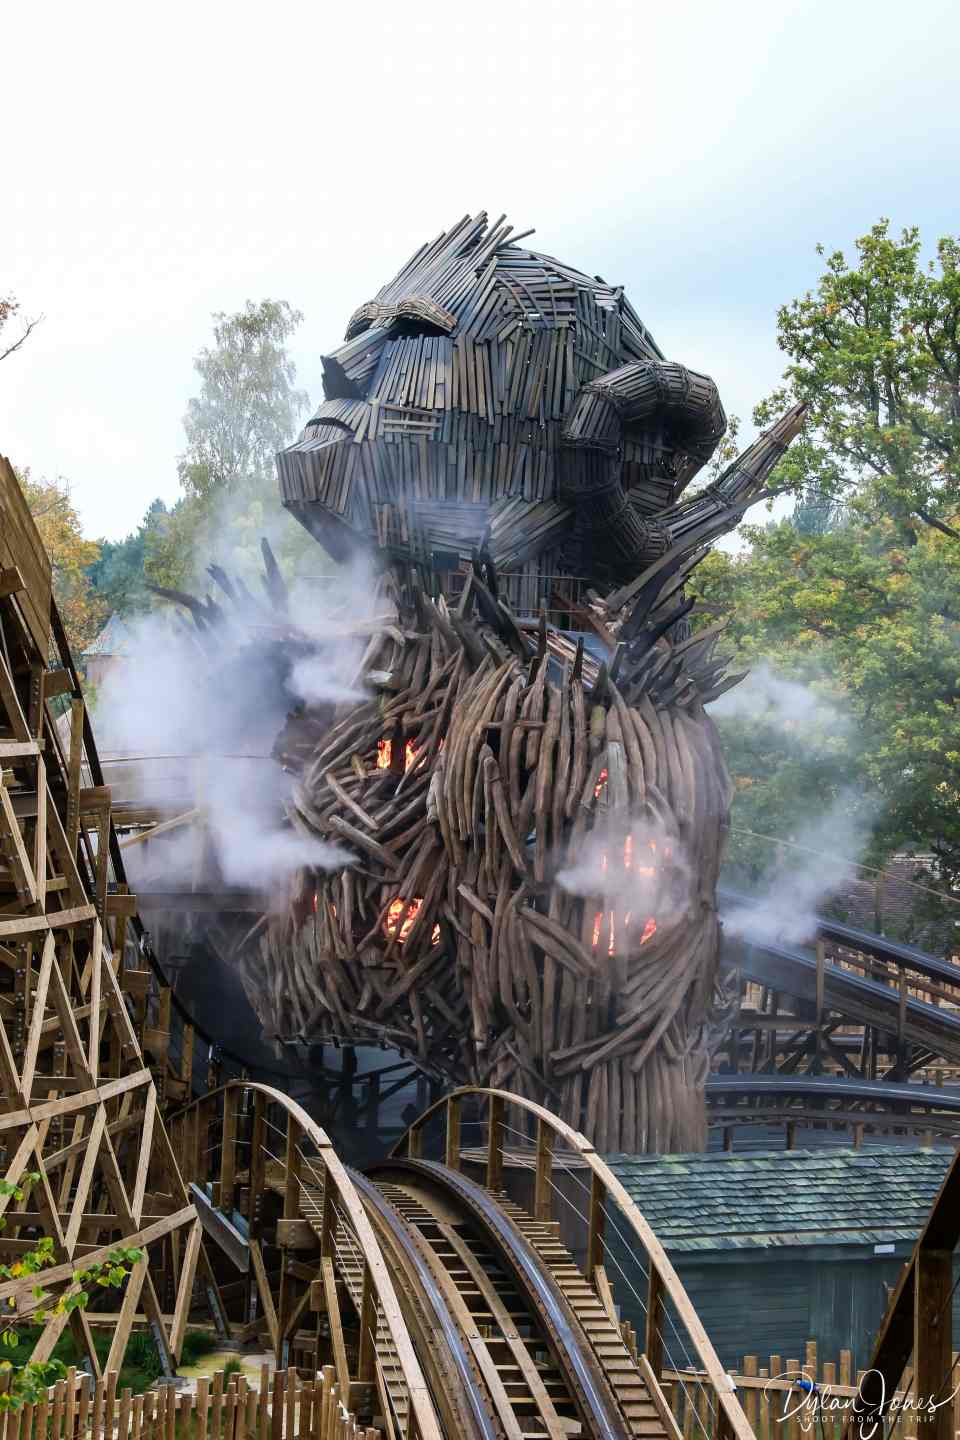 Wooden track twisting through the Wicker Man structure